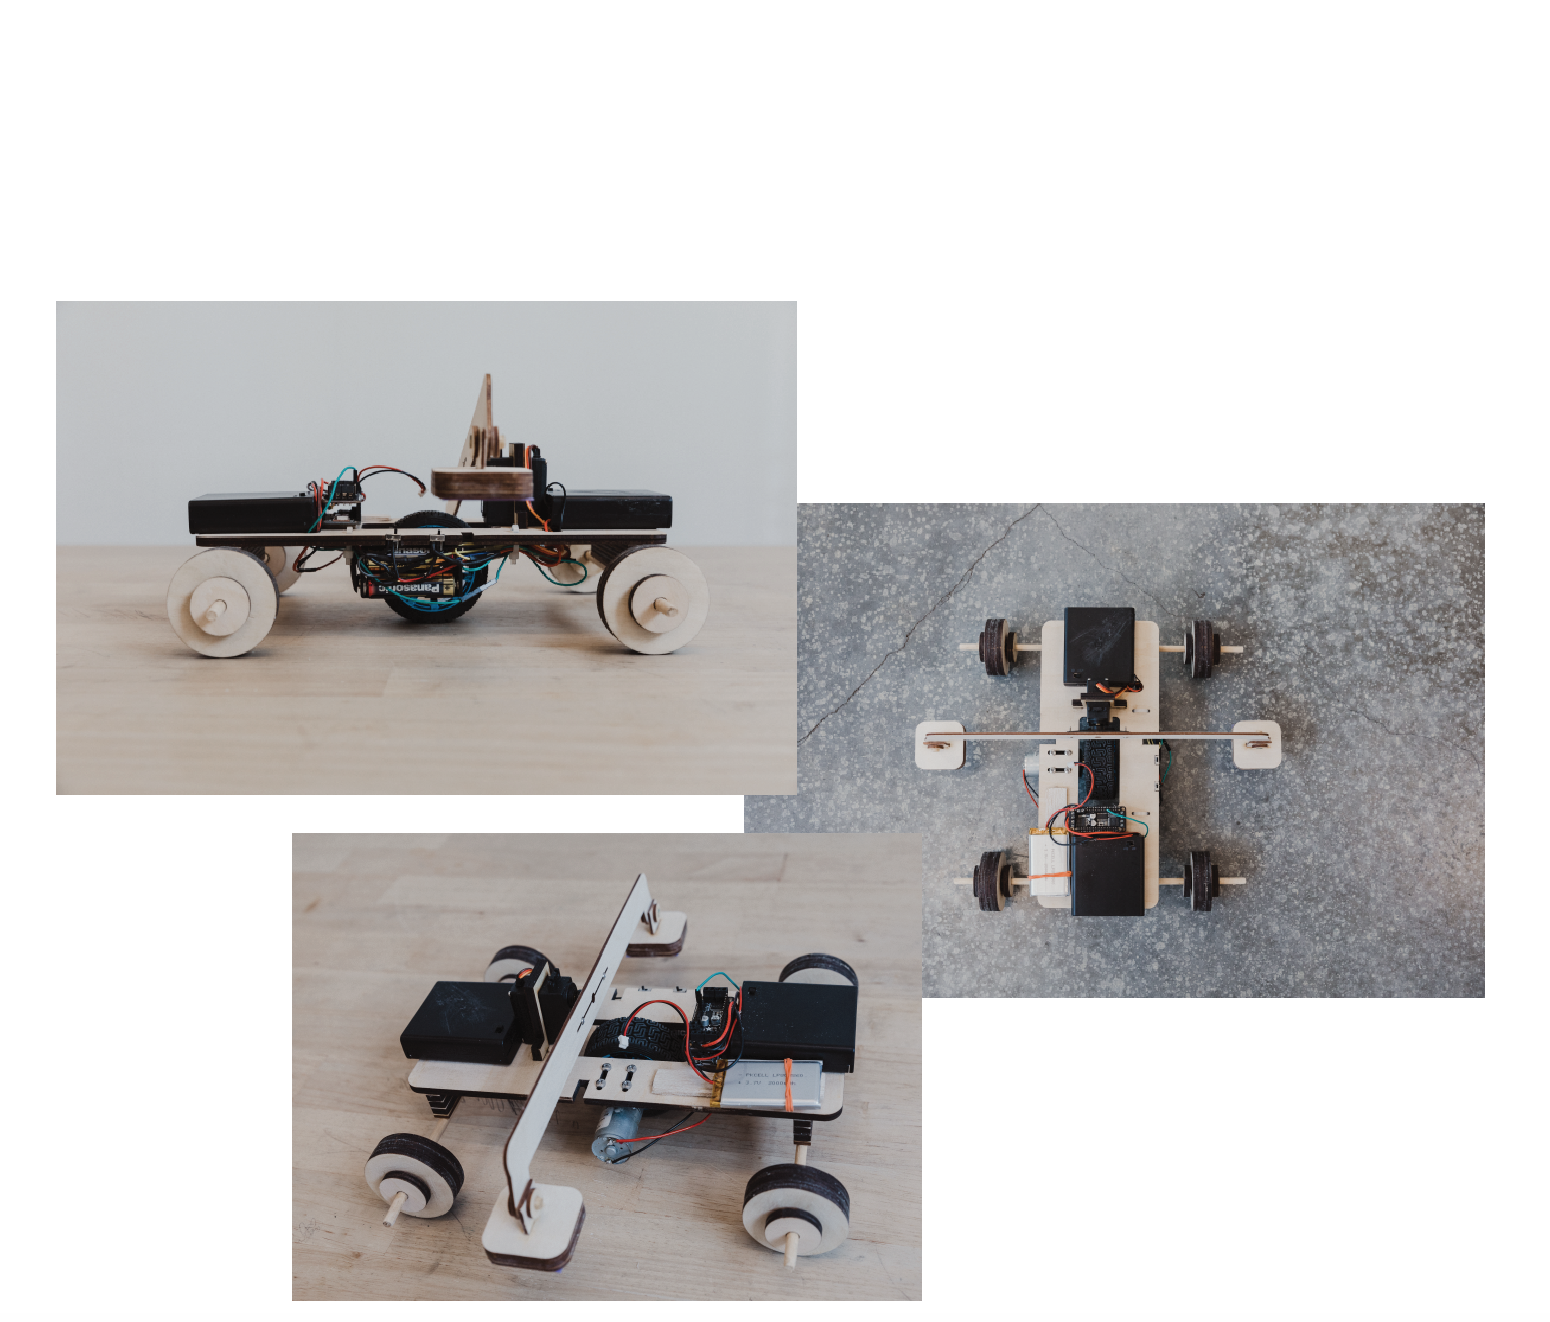 """Final Prototype - In this final iteration, we used a 1/4"""" thick, rectangular chassis instead of a 1/8"""" thick, """"T"""" chassis, for better stability and weight distribution. We opted for laser-cut plywood wheels as not only an aesthetic decision over the soldering wire containers, but also a durability decision over the ping pong balls, also opting to add bearings. We reduced the horizontal and vertical play on the stoppers to get the maximum amount of surface area contact for maximum drag. We also added better-positioned slots for cable management below the chassis, a housing support to keep the servo in place, and slots to flushly add power switches. For the bluetooth controller, we added two speed modes for flexibility when maneuvering through different obstacles (i.e. slalum vs. incline)."""